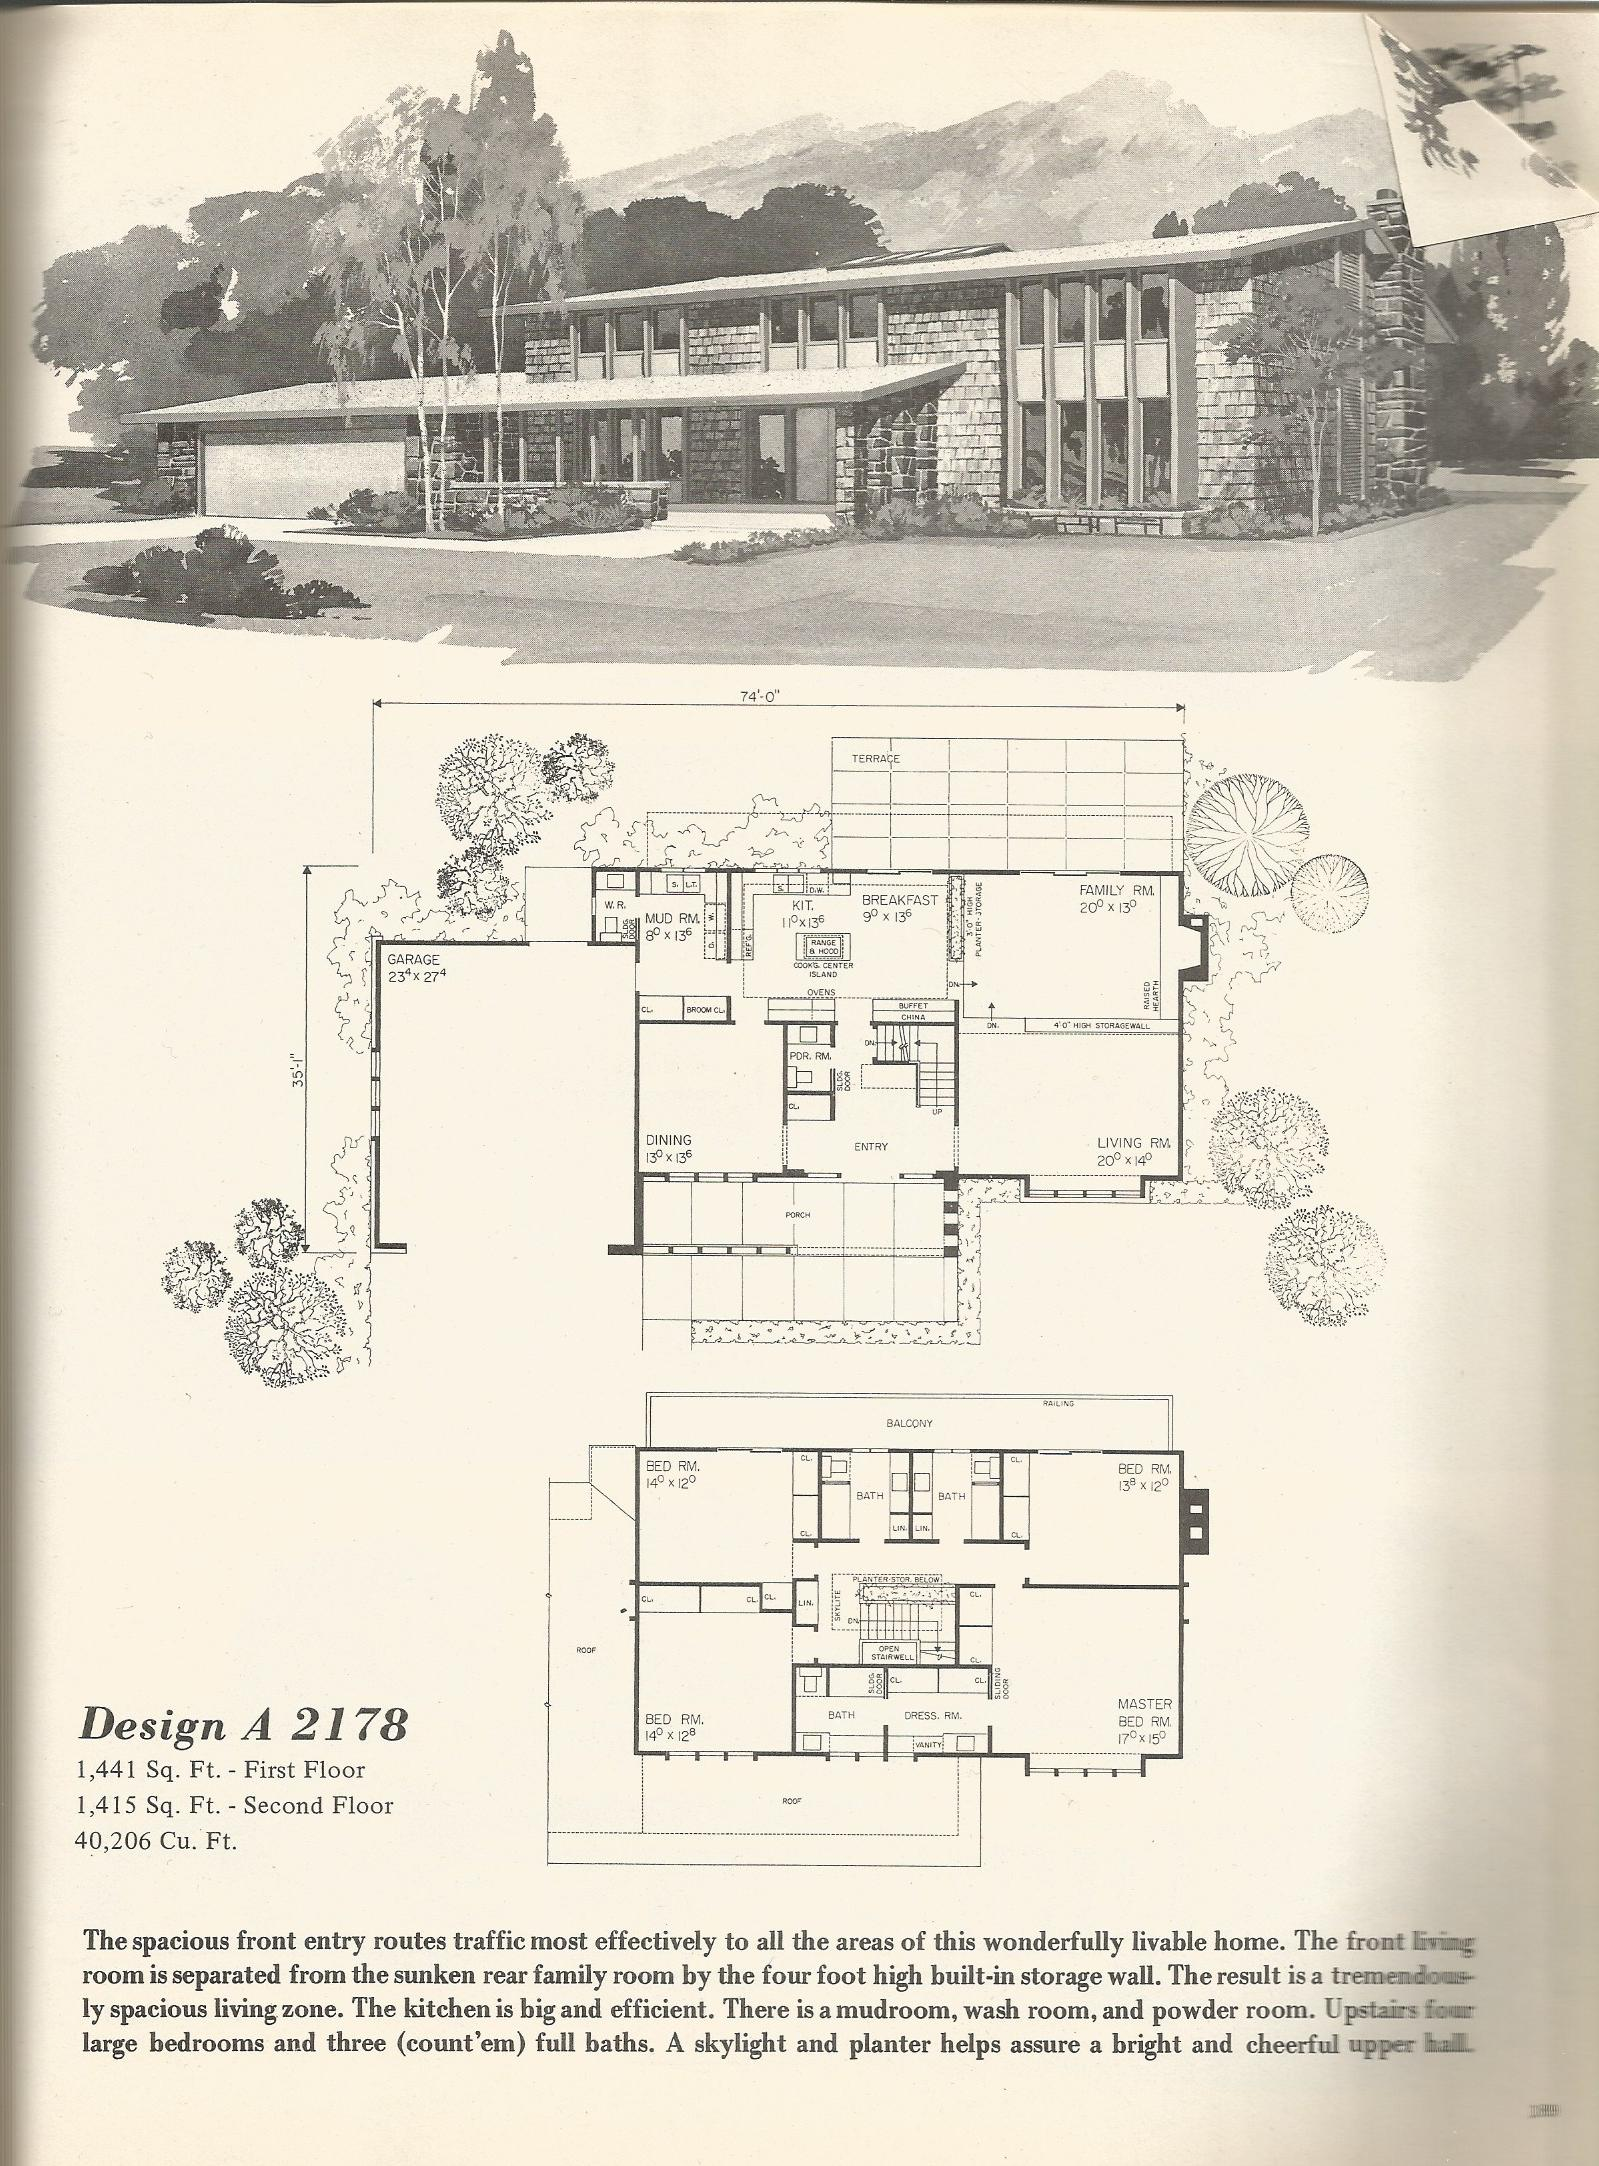 Vintage house plans 2178 antique alter ego for 1970s house floor plans